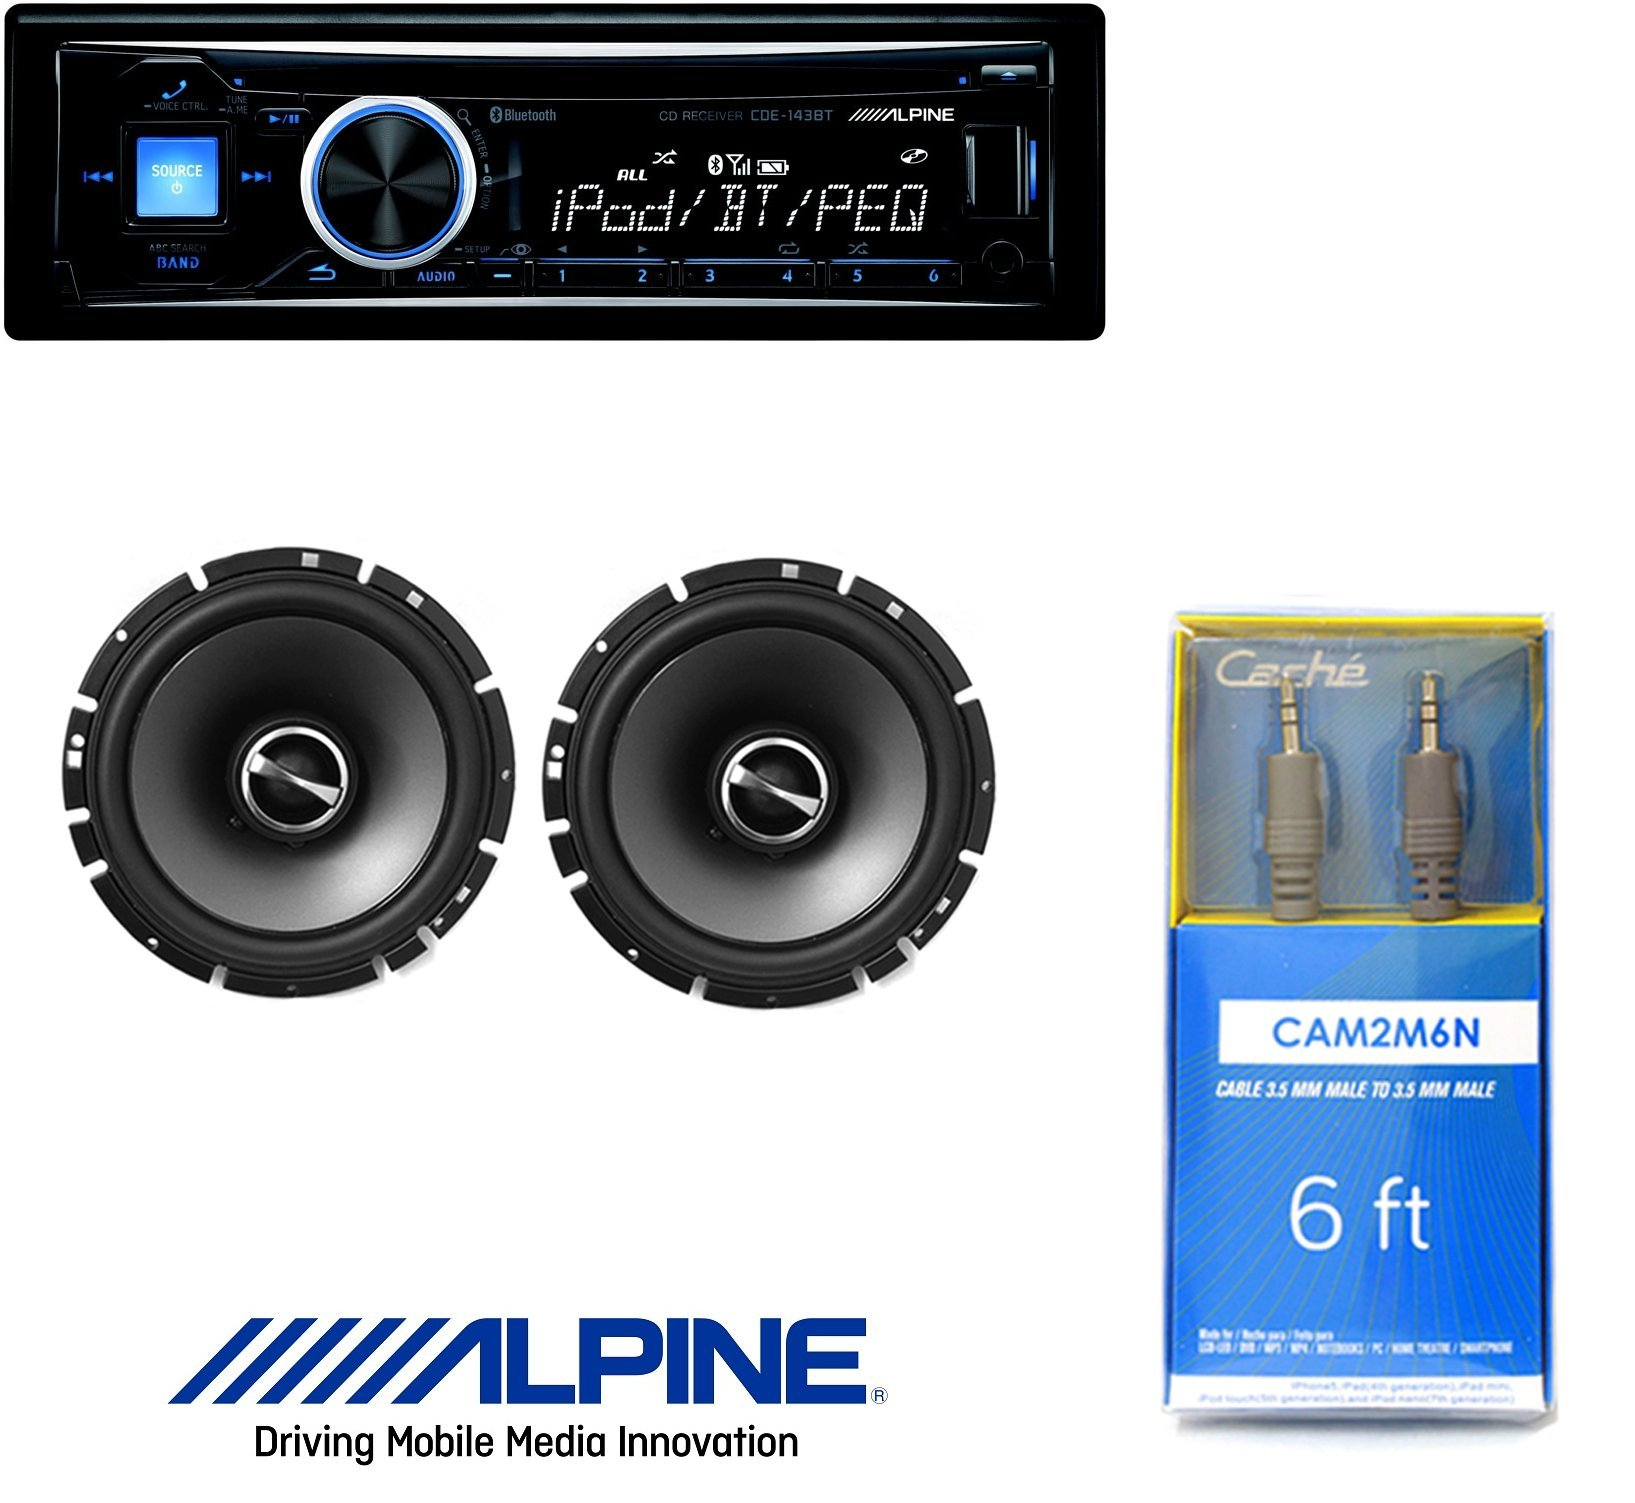 """Alpine CDE-143BT Advanced Bluetooth CD Receiver W/ Alpine SPS-610 6.5-Inch 2-Way Type-S Series Coaxial Car Speakers And 6ft CAM2M6N Cable 1/8"""" Mini Stereo to Cable 1/8"""" Mini Stereo Cable"""